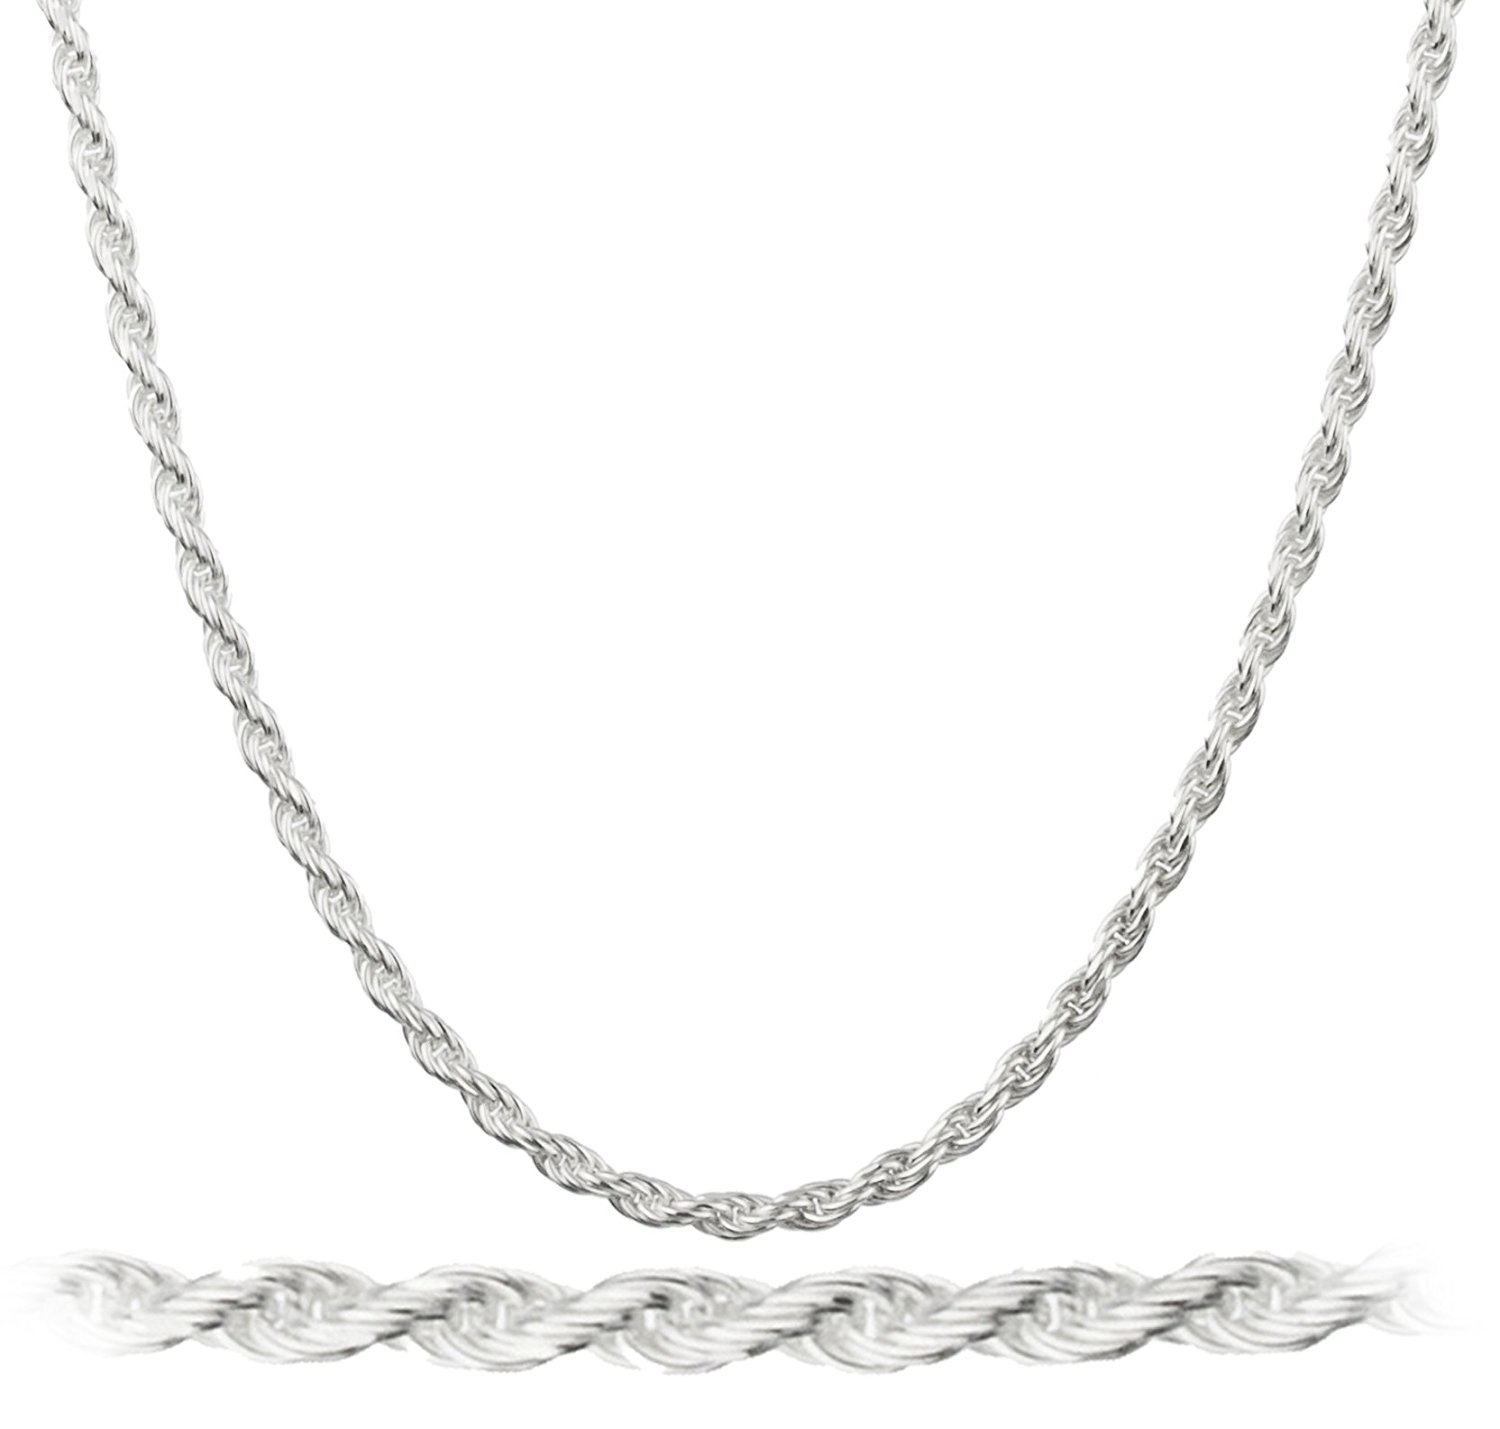 "Italian Silvertone 1.5mm Rope Chain Nickel Free - Available in 7"" 8"" 9"" 10"" 16"" 18""to 24"" 30"" or 40"" (C0-P3QY-YKK4)"